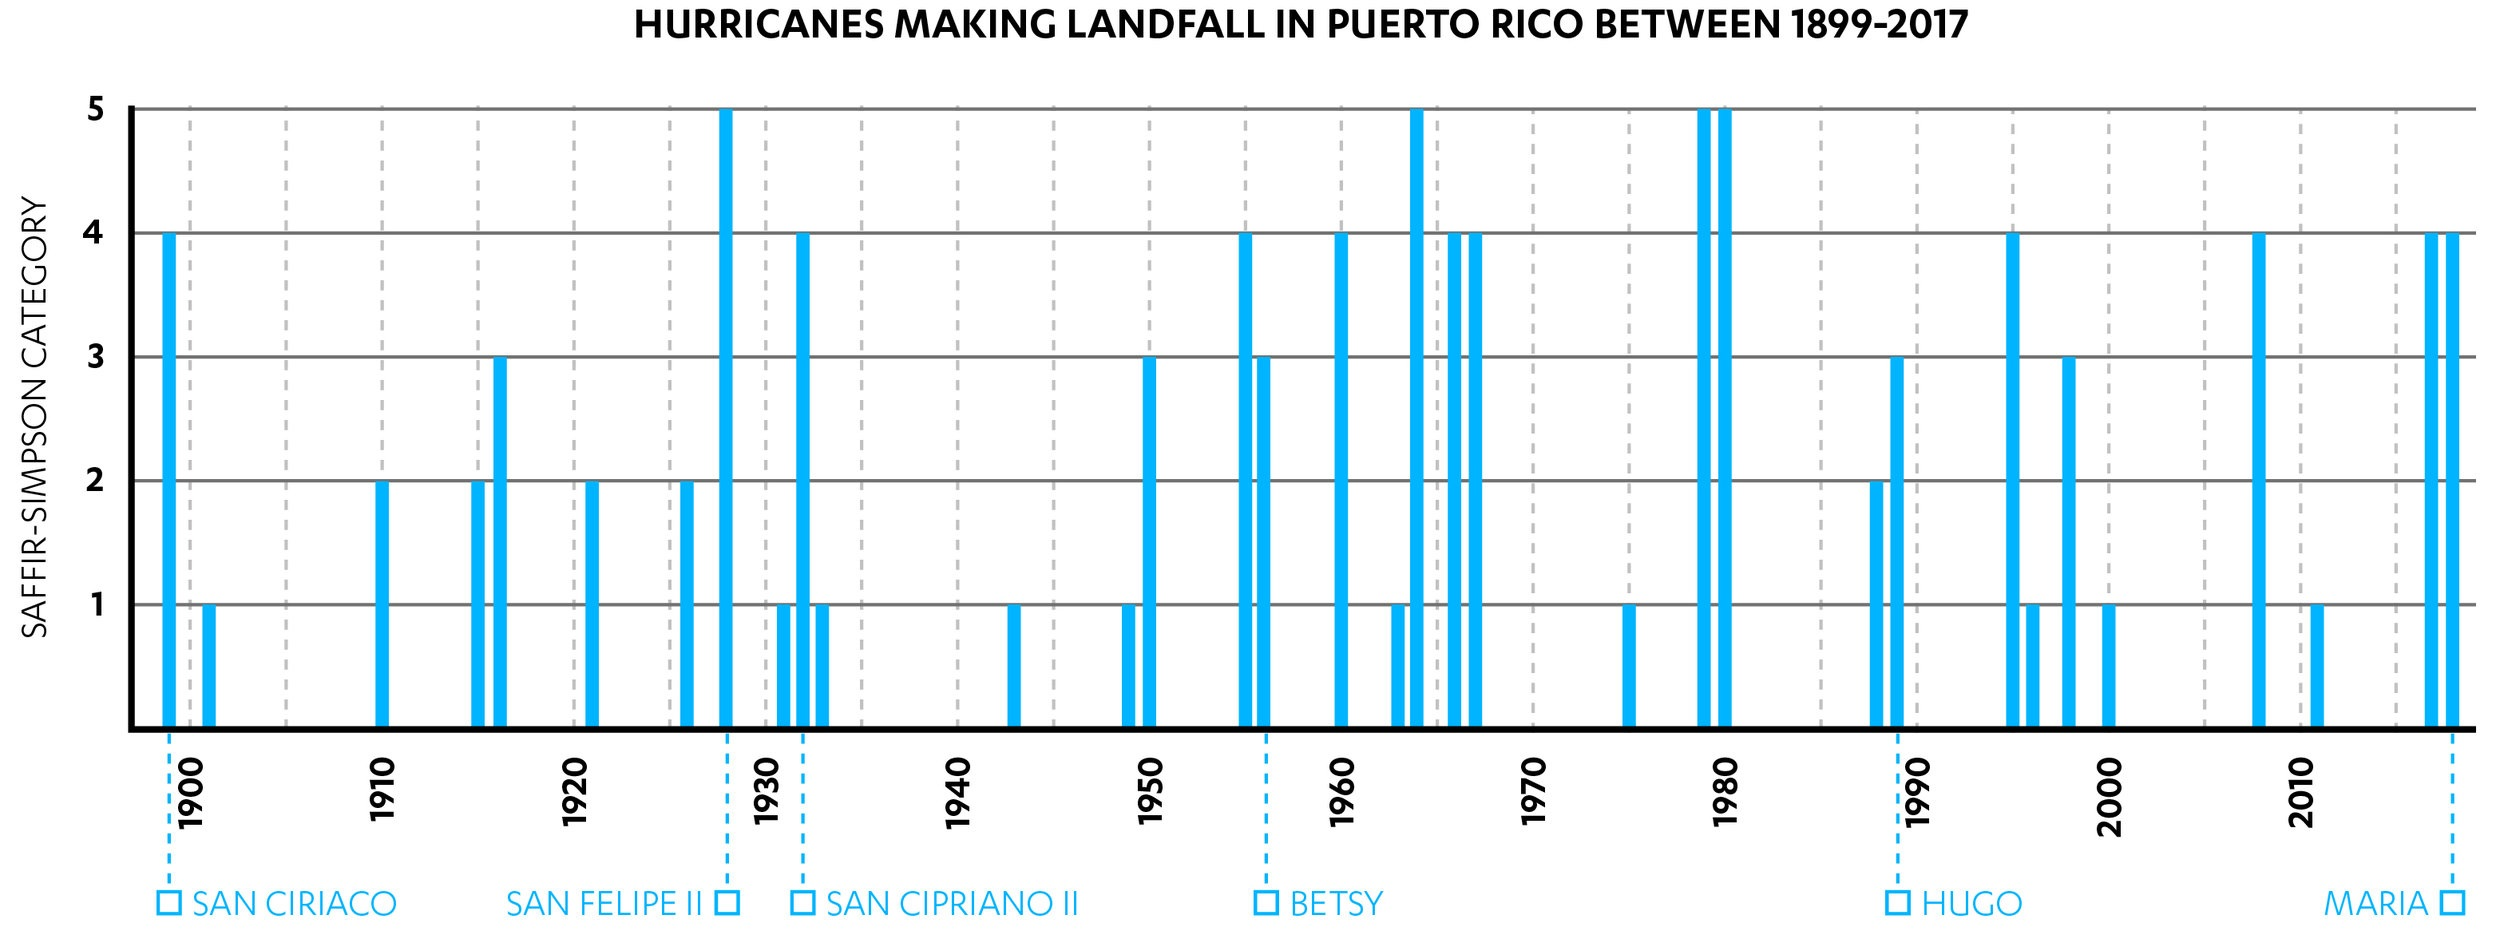 Hurricanes that have made landfall in Puerto Rico between 1899 and 2017, shown with their Saffir-Simpson Hurricane categorization (Rivera, 2018 triangulated with data from Boose, et al (2004) and Rodríguez (1997))